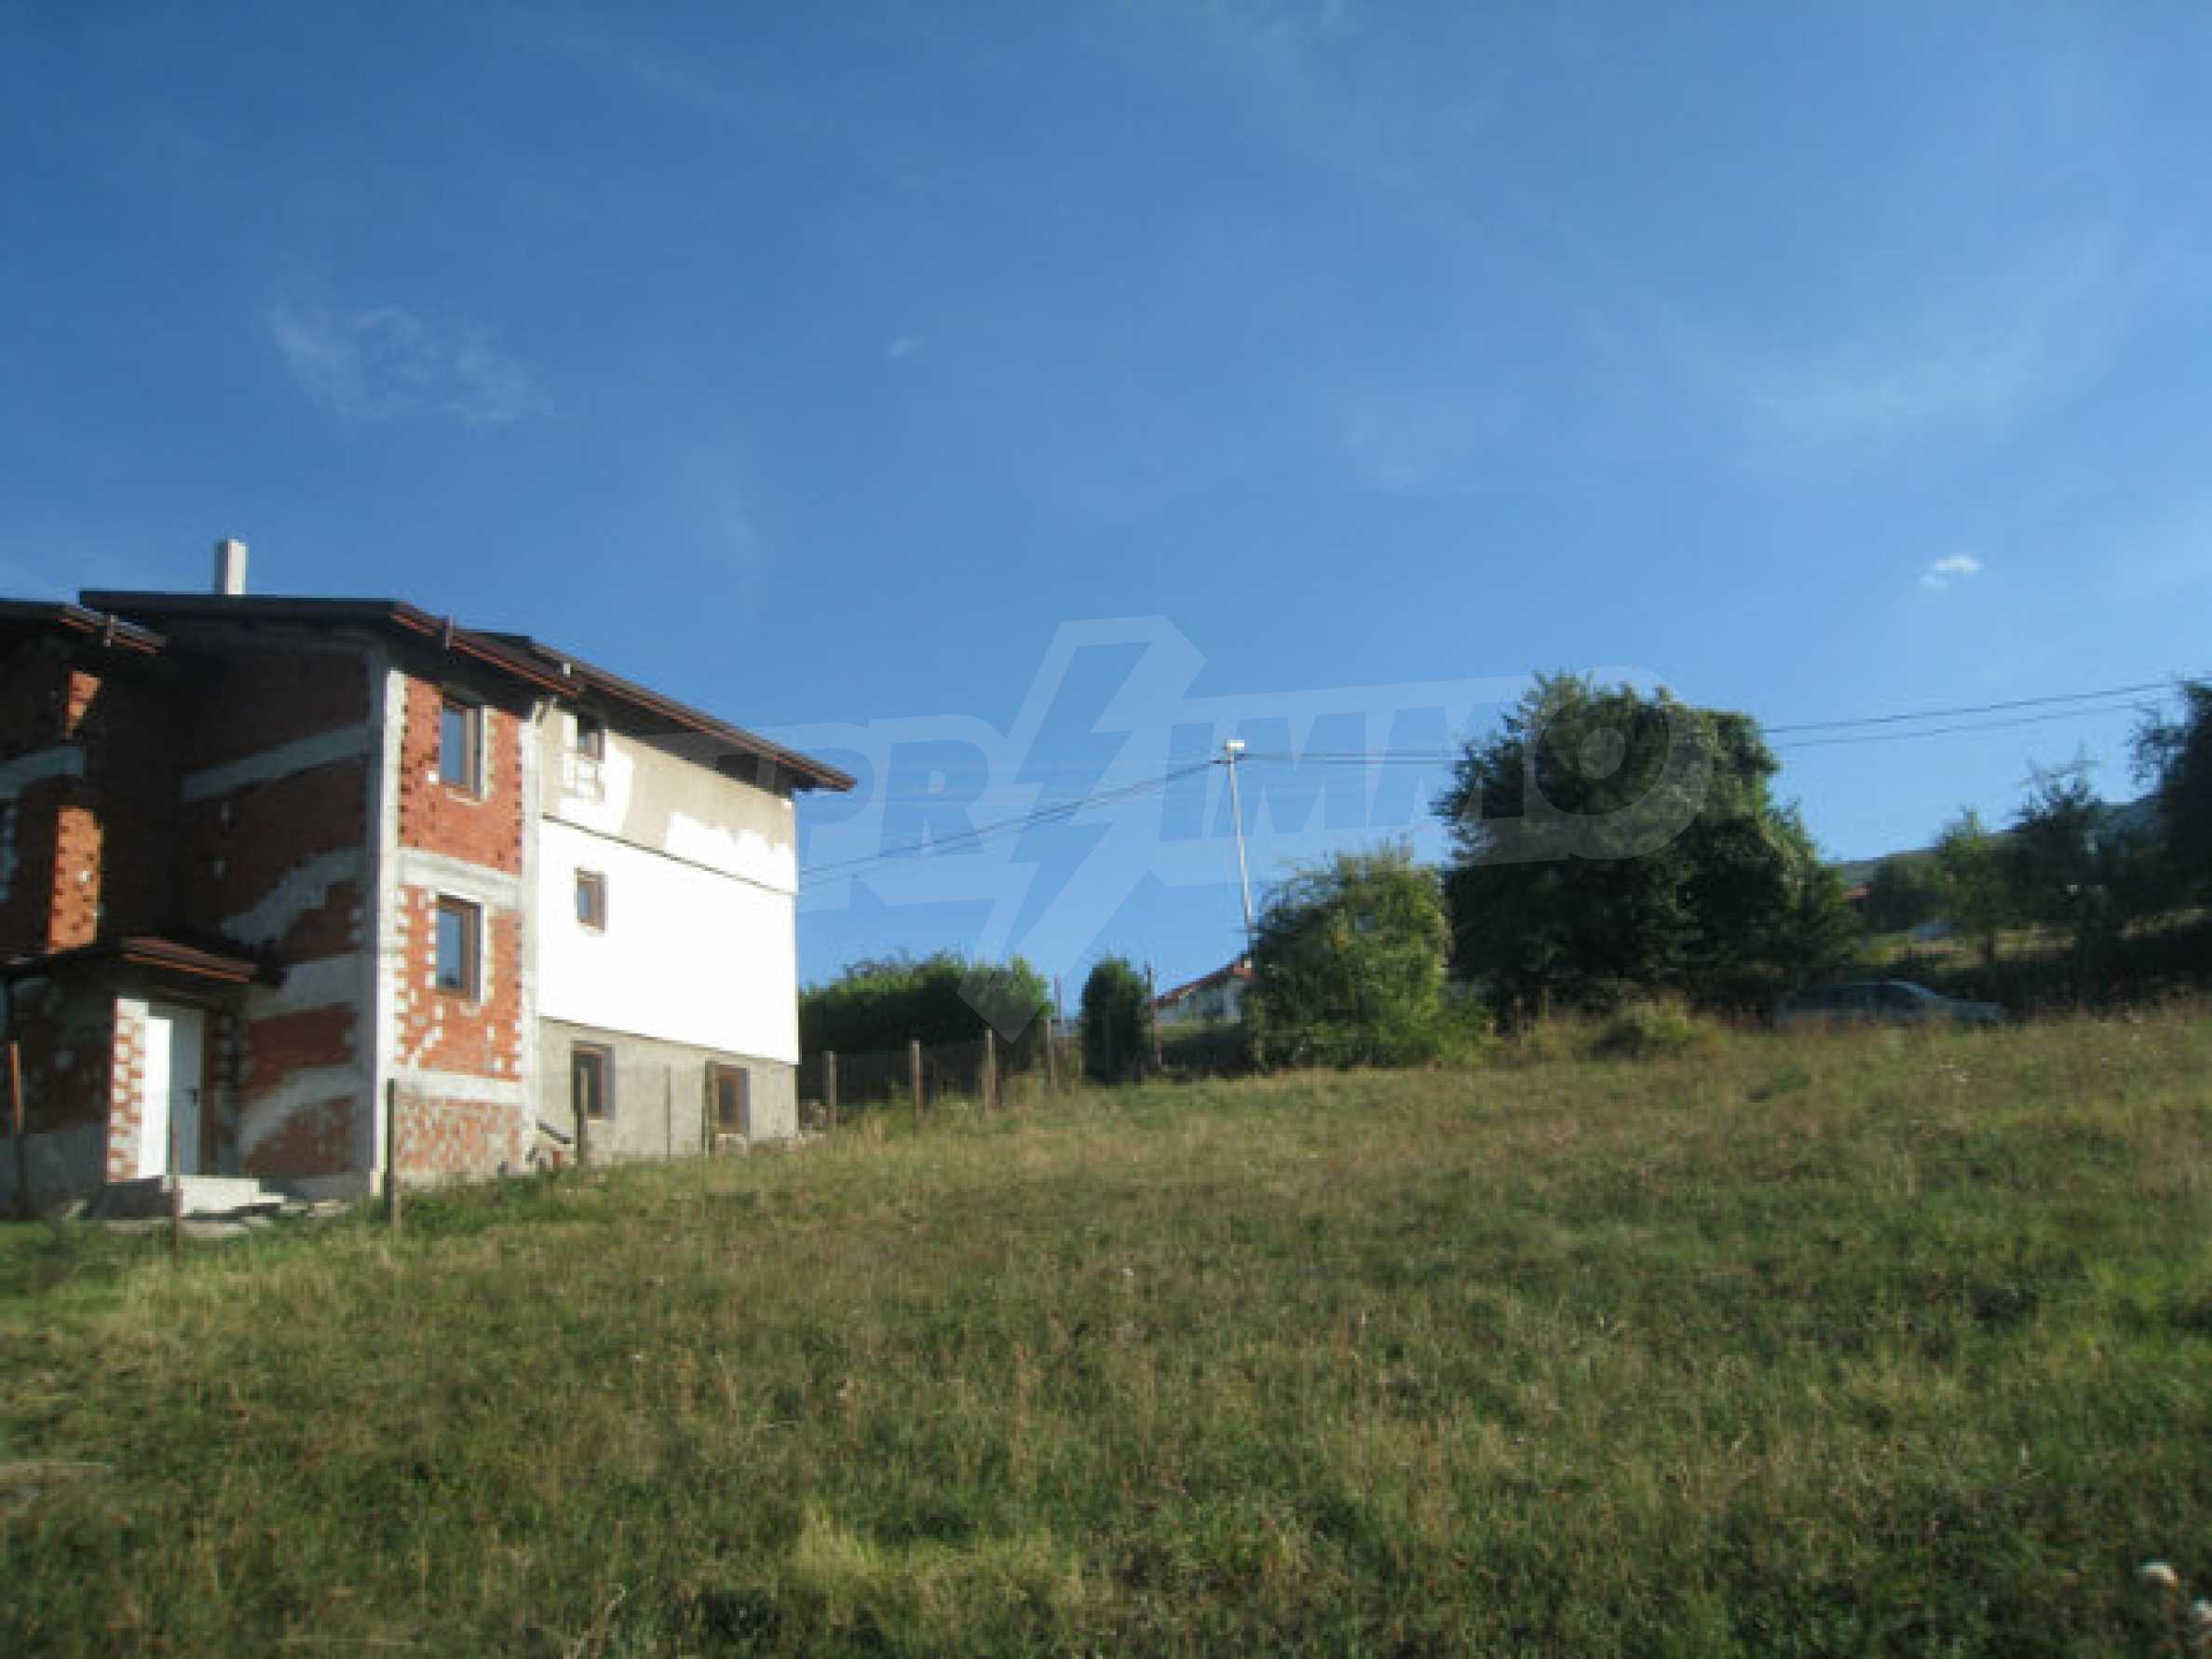 Regulated plot of land for rural private house or villa near Sofia 17